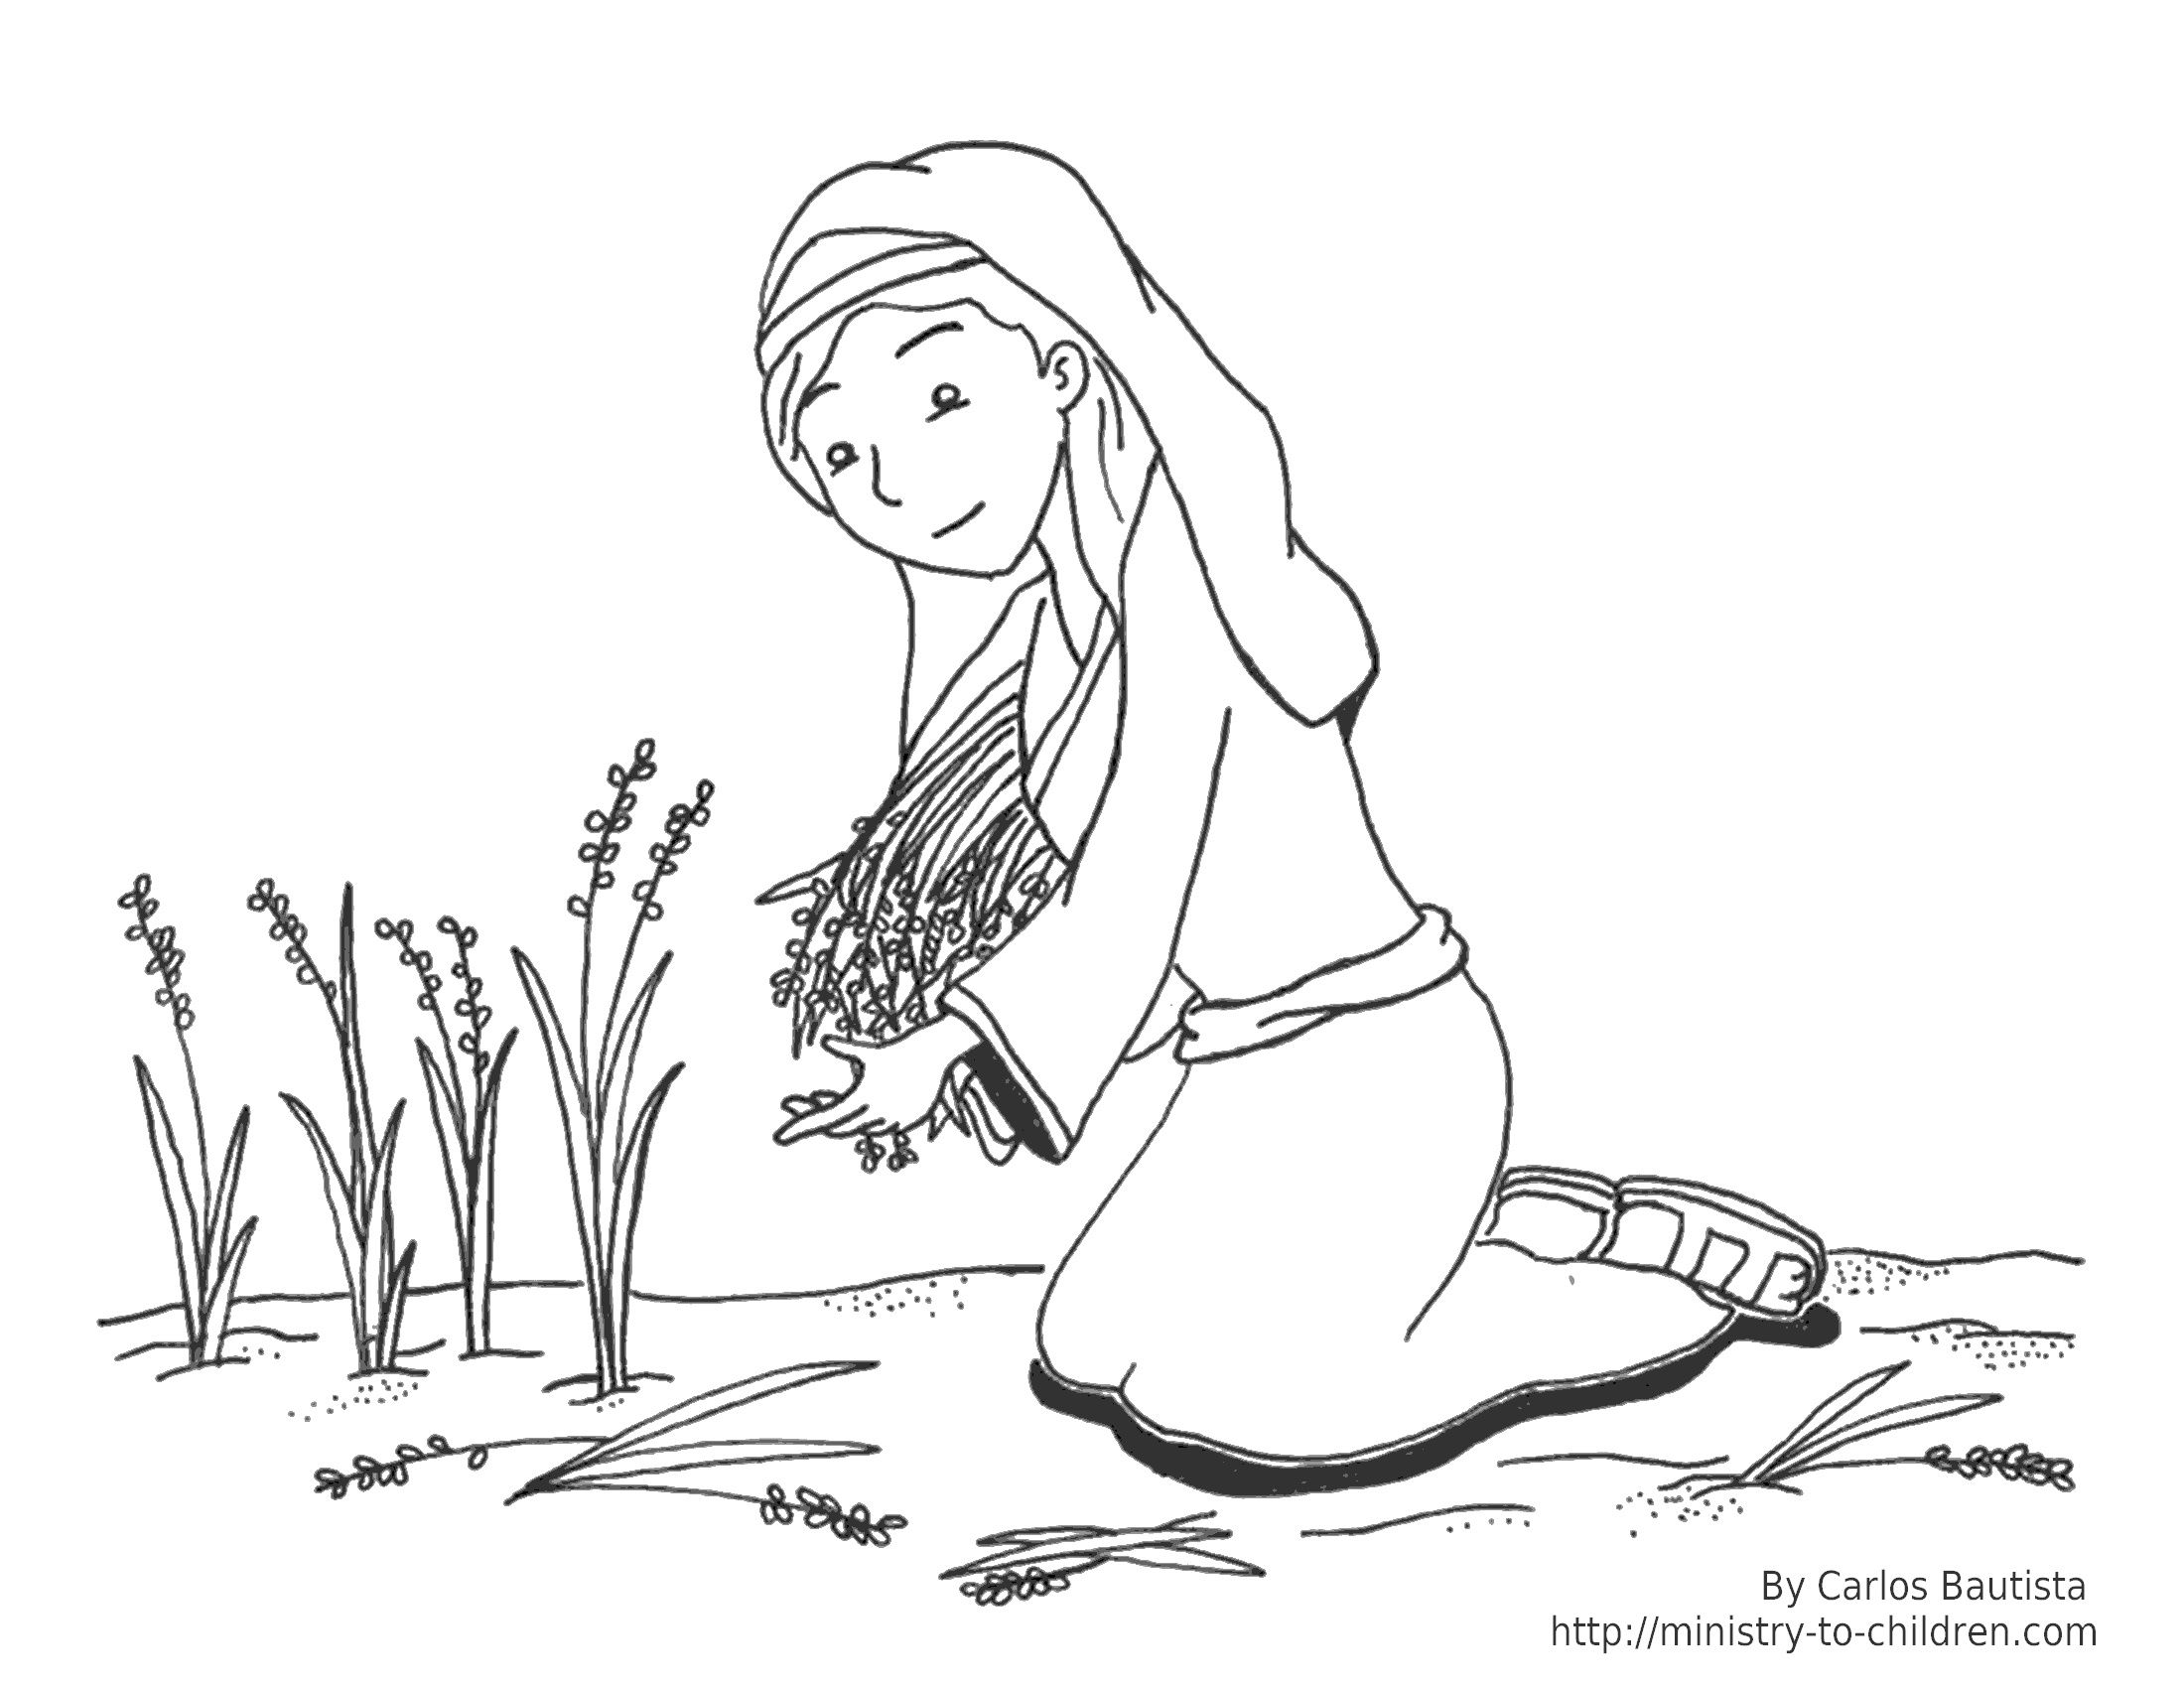 For a popstick puzzle: Ruth (from the bible